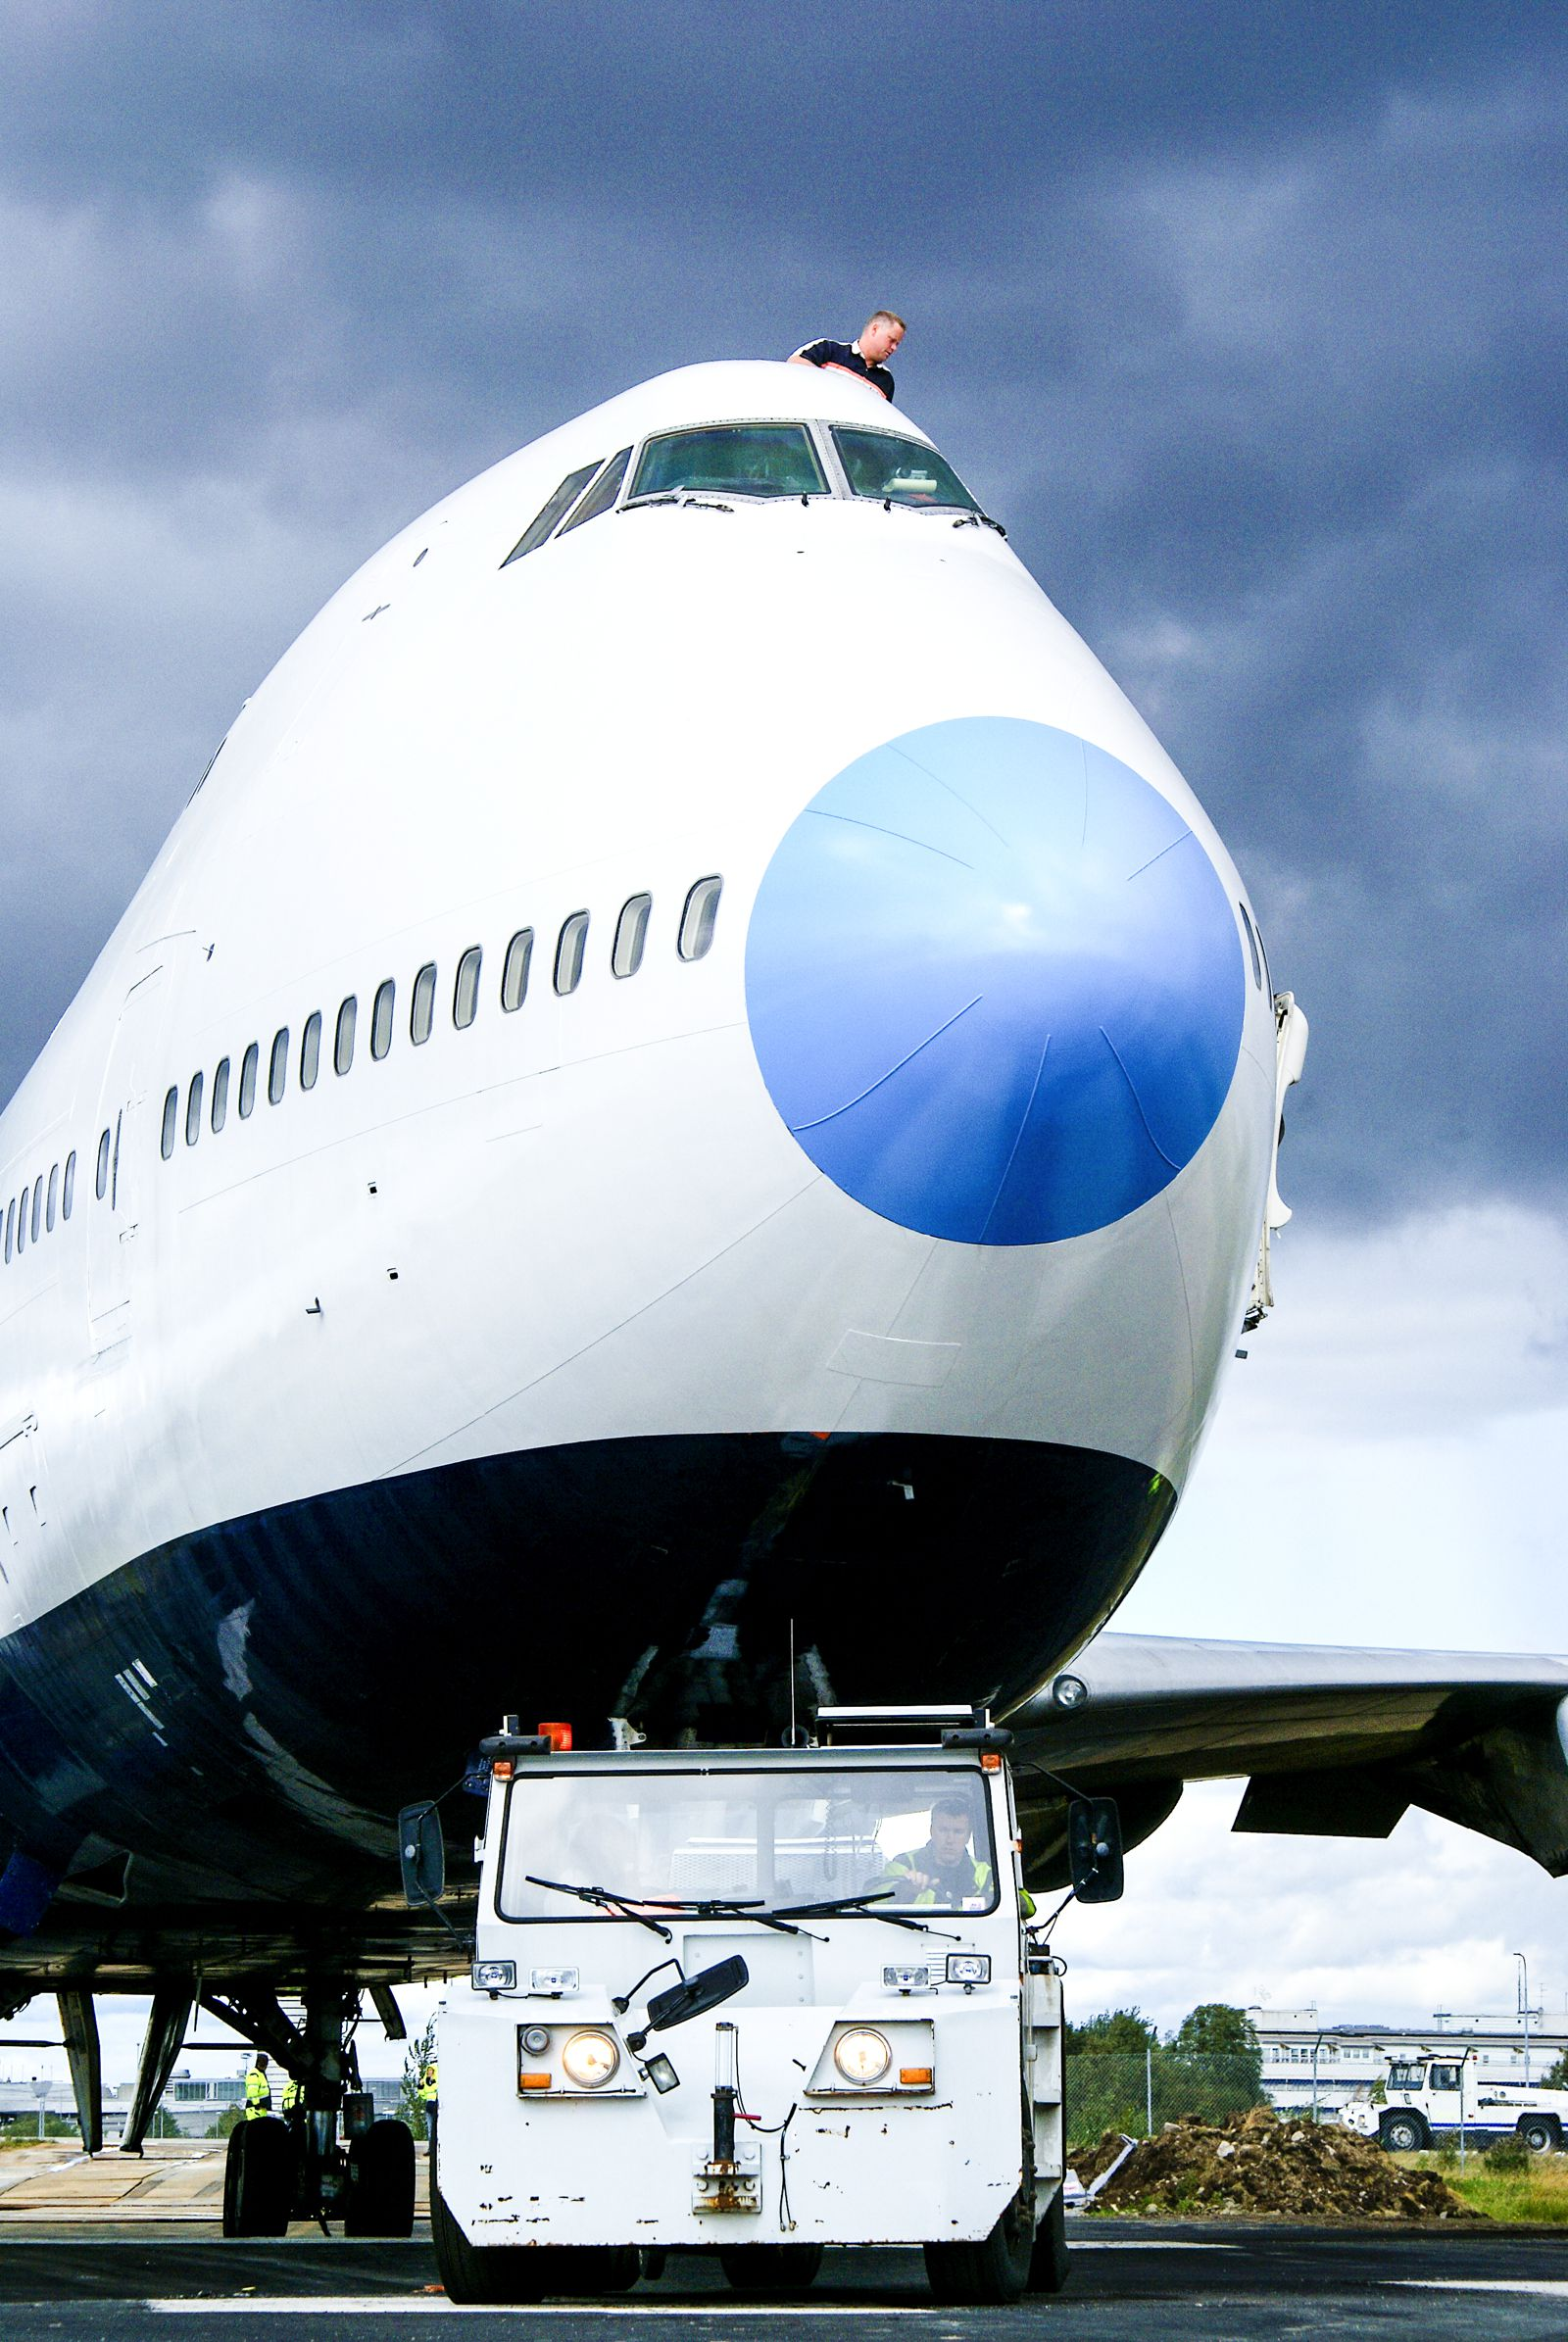 Ever Wanted To Stay In A Jumbo Jet? Now Is Your Chance! (9)